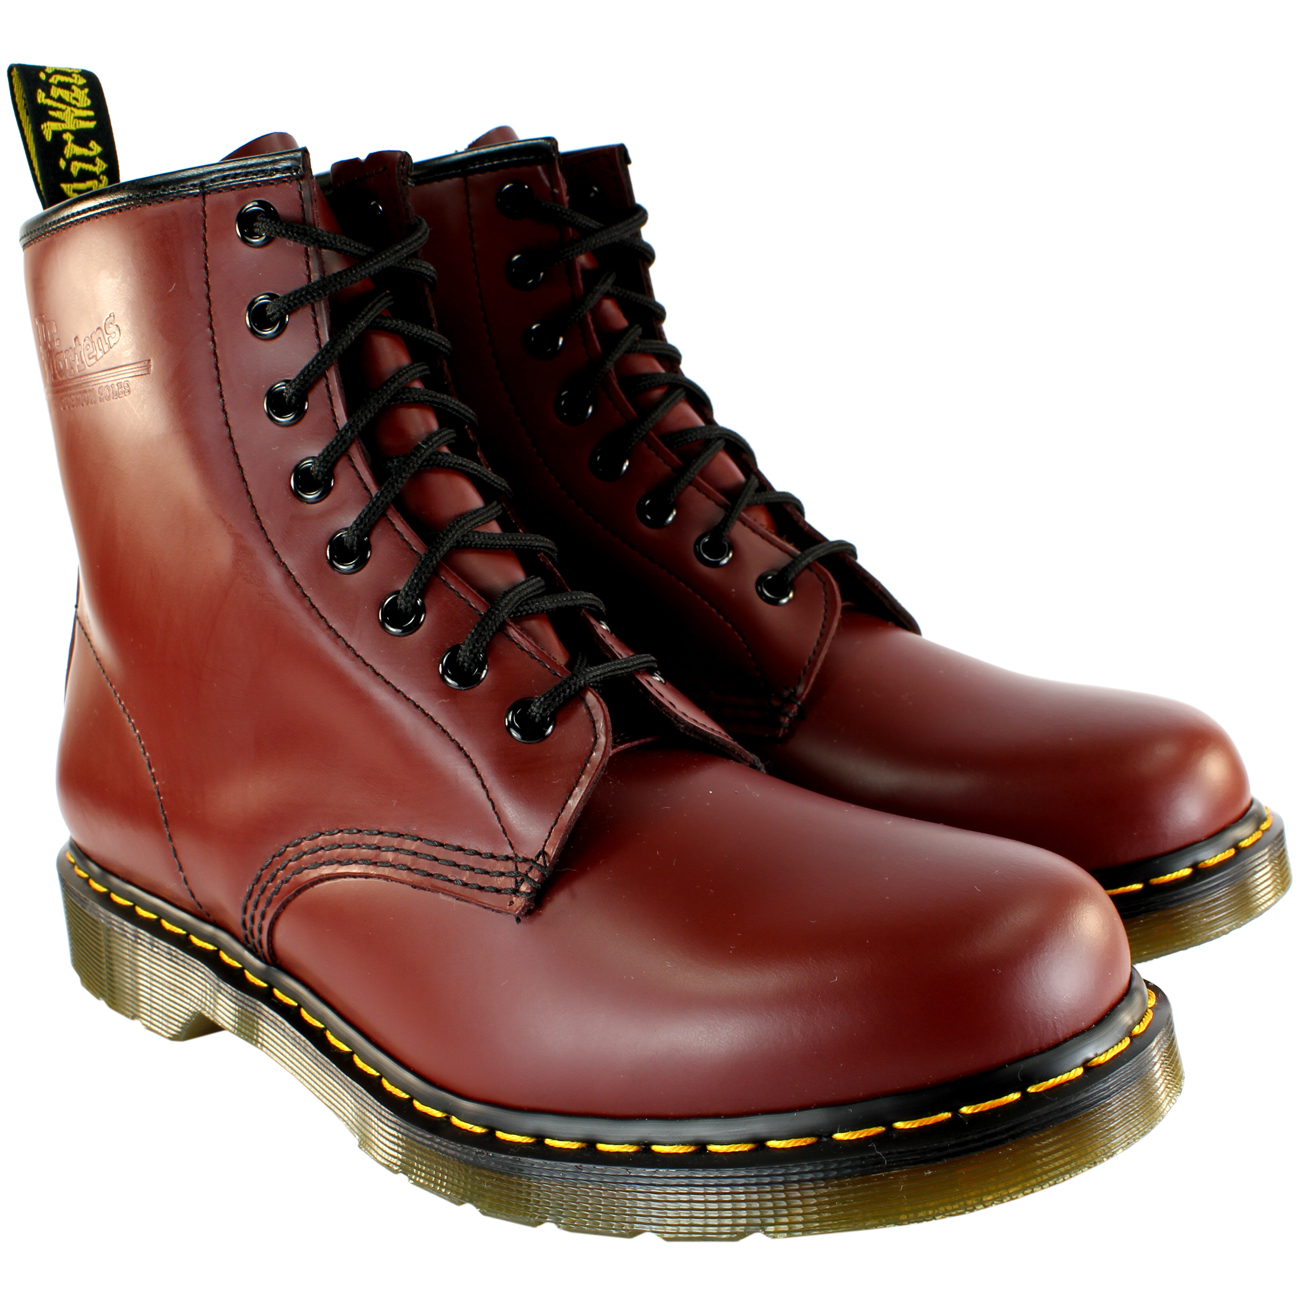 Womens-Dr-Martens-1460-Classic-Lace-Up-Leather-Ankle-Army-Boots-UK-Sizes-3-8